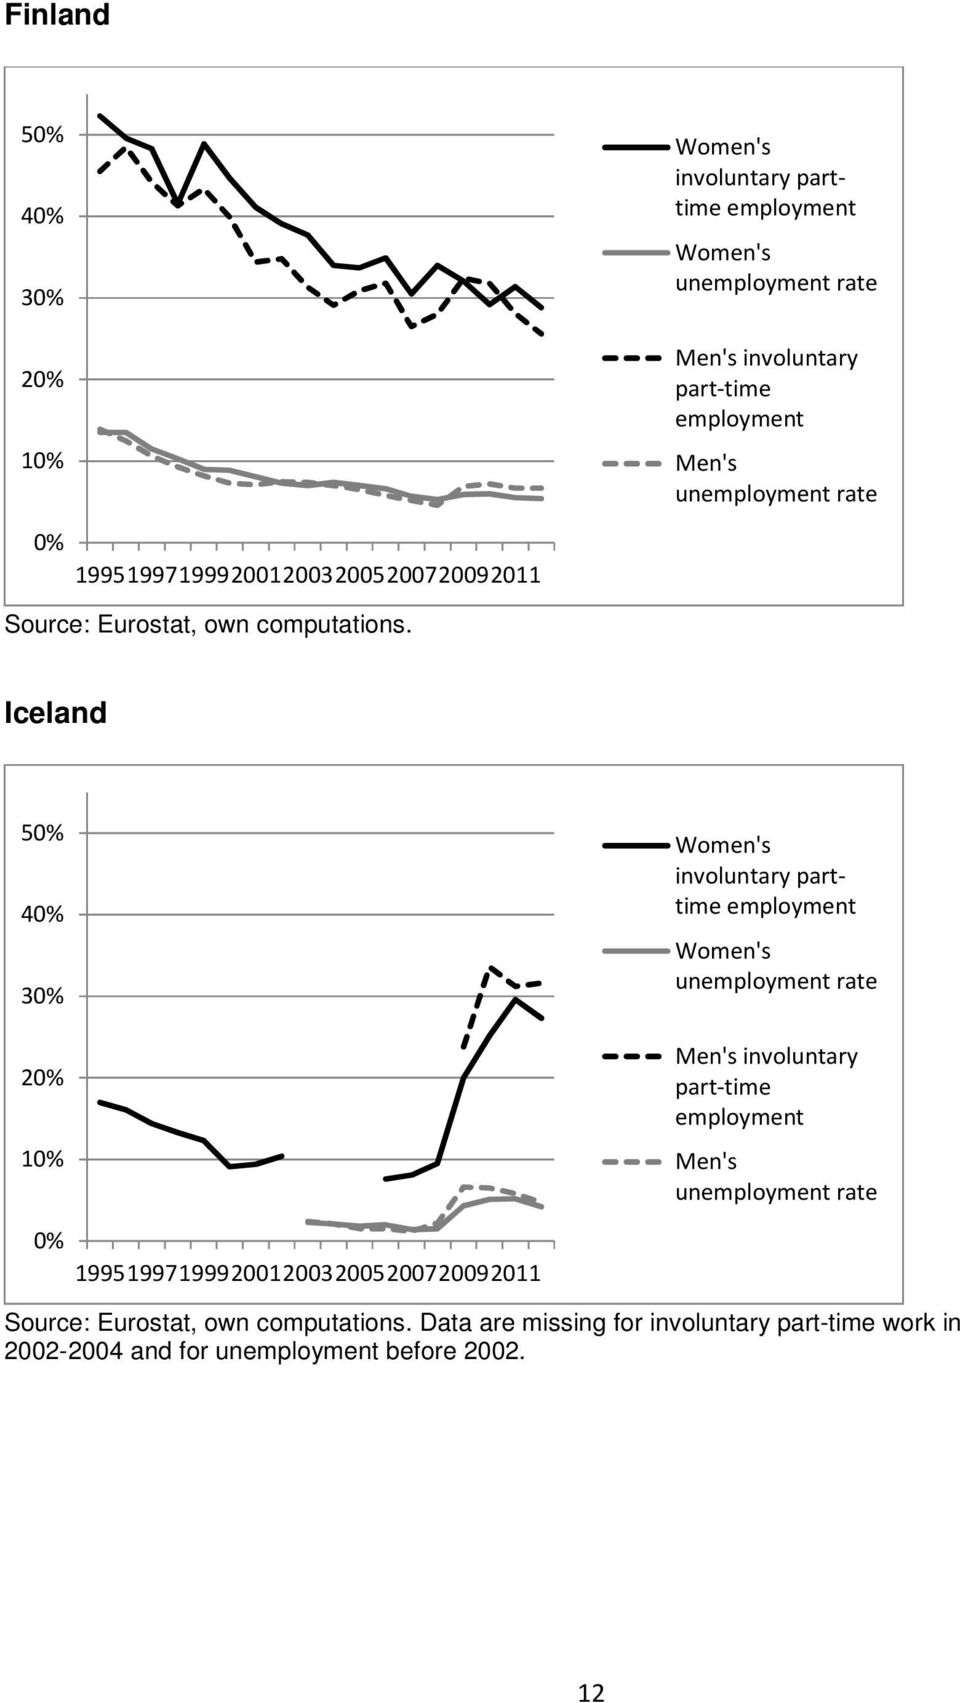 Iceland 50% 40% 30% 20% 10% Women's involuntary parttime employment Women's unemployment rate Men's involuntary part-time employment Men's